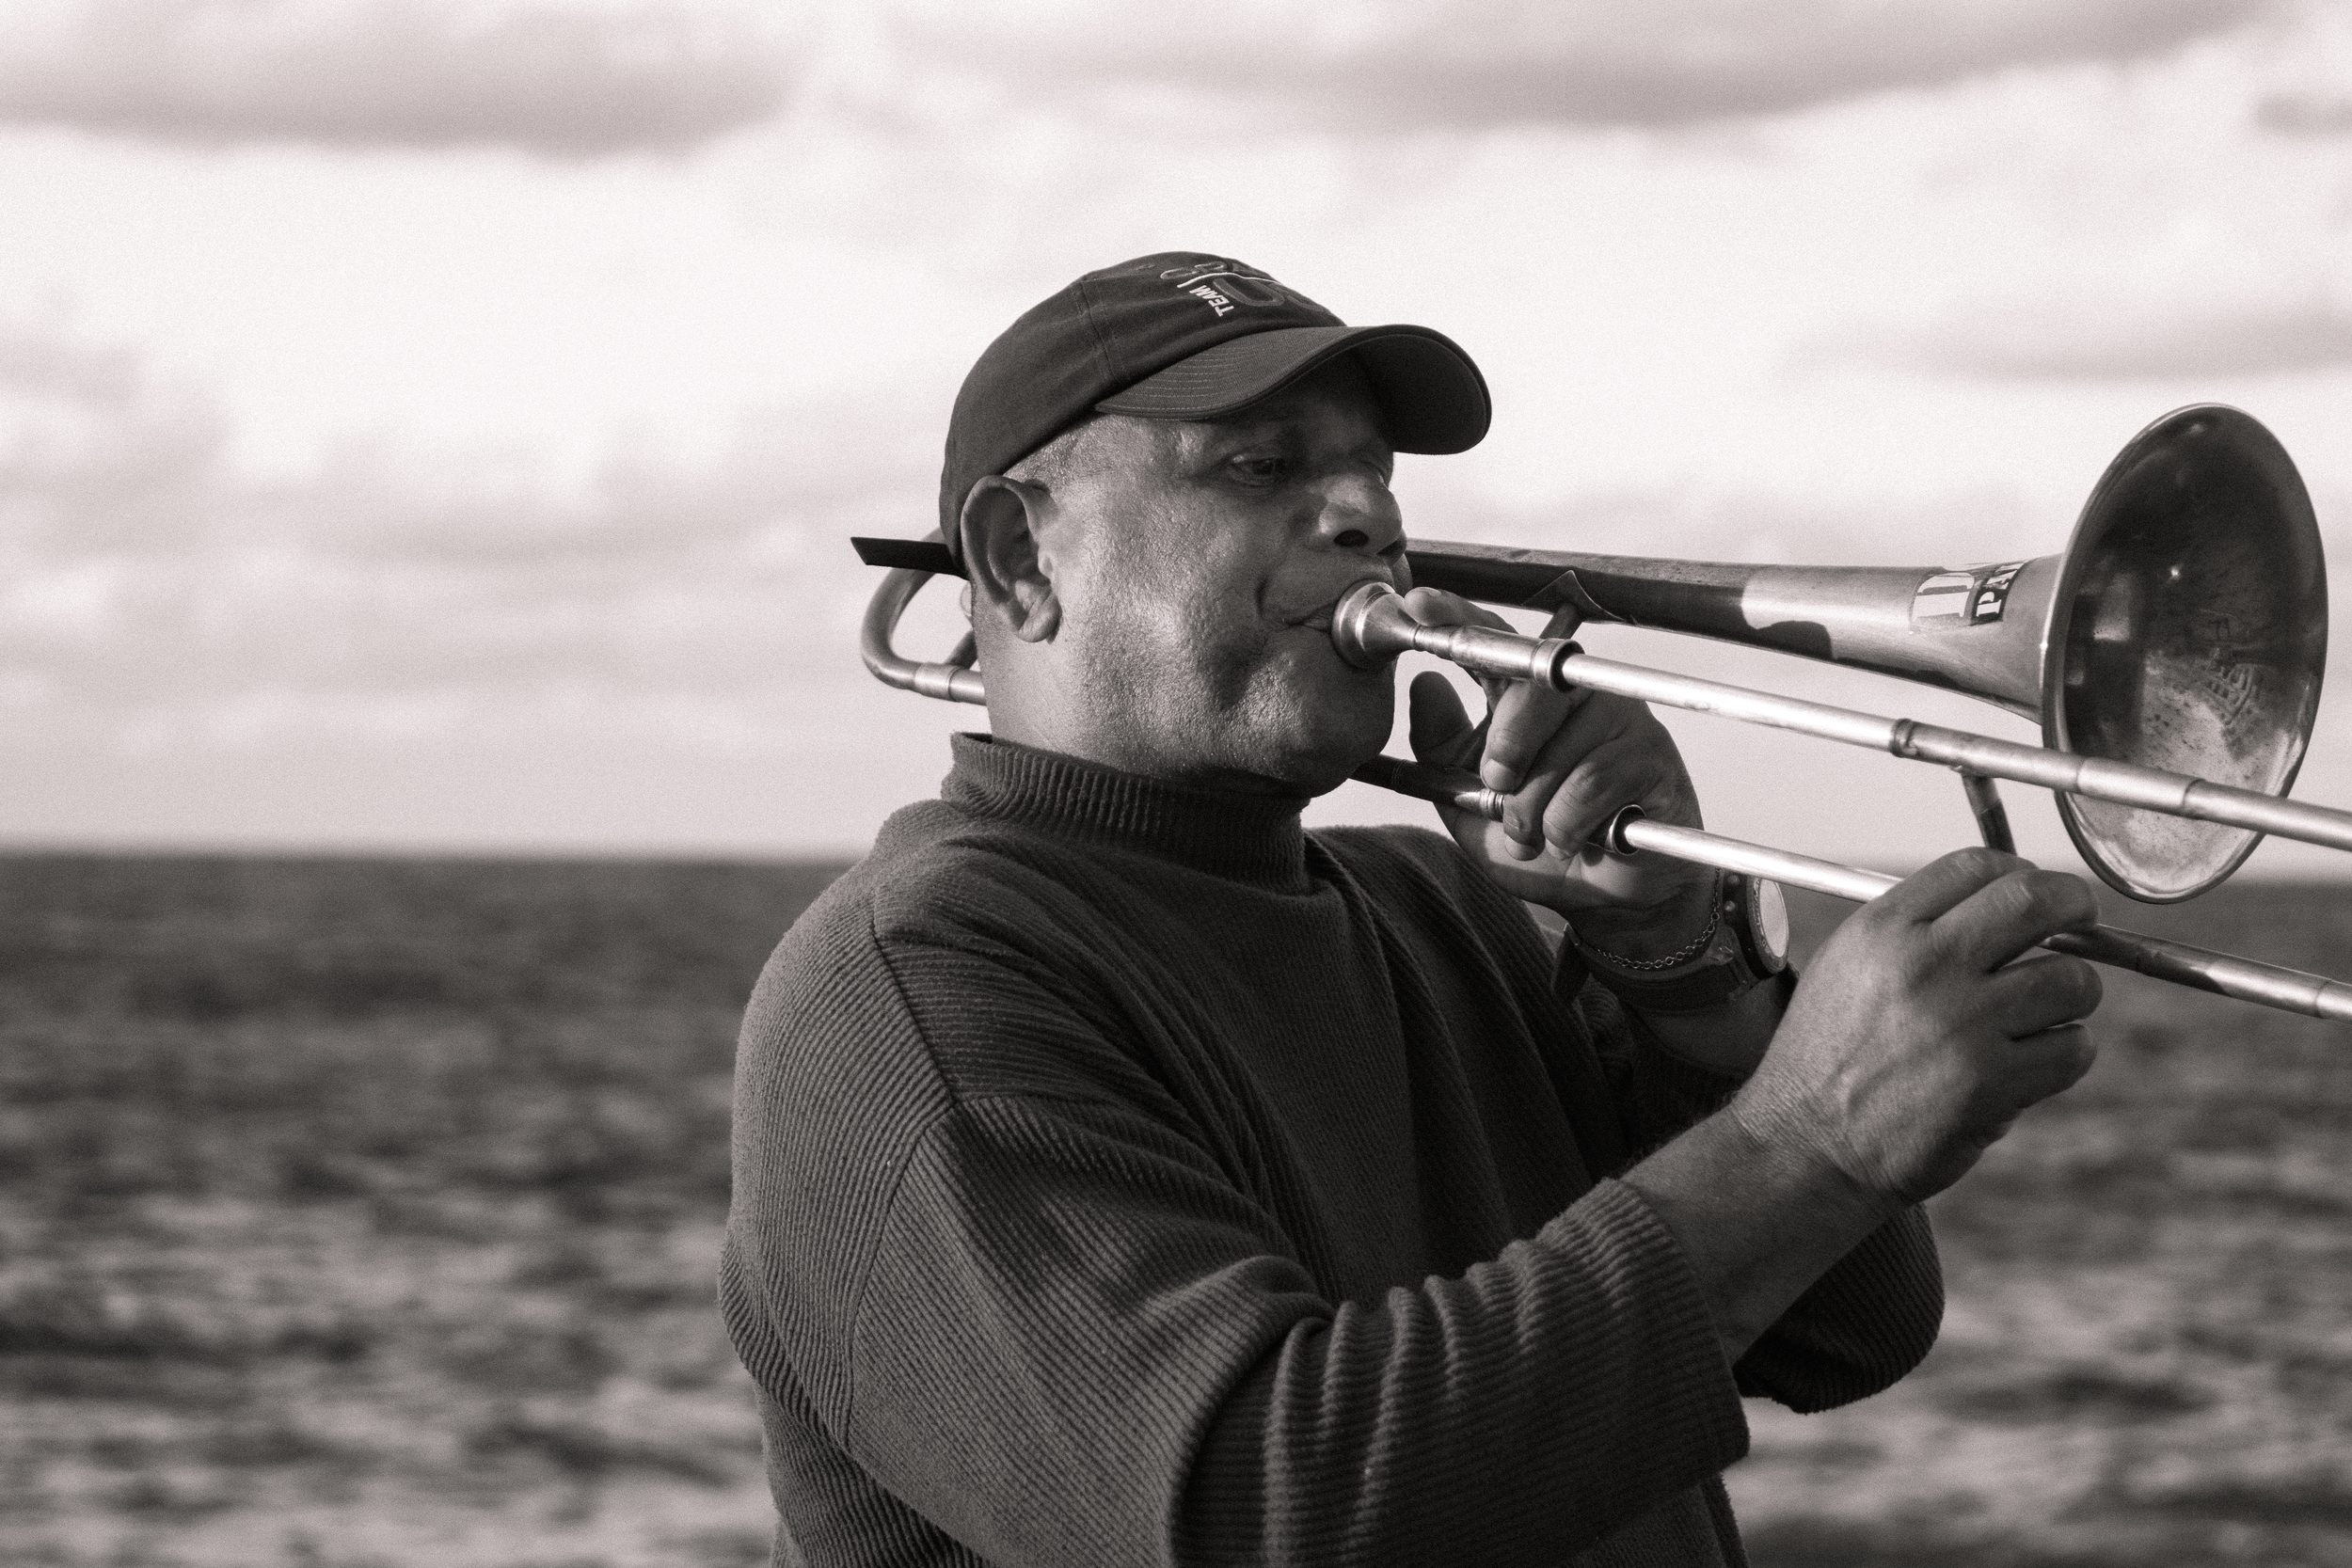 ISO 200 / 55mm / f3.5 / 1/500sec -   On nice cool afternoons, the Malecon is full of tourists and local alike hanging along the seawall. Here is another trumpet player.